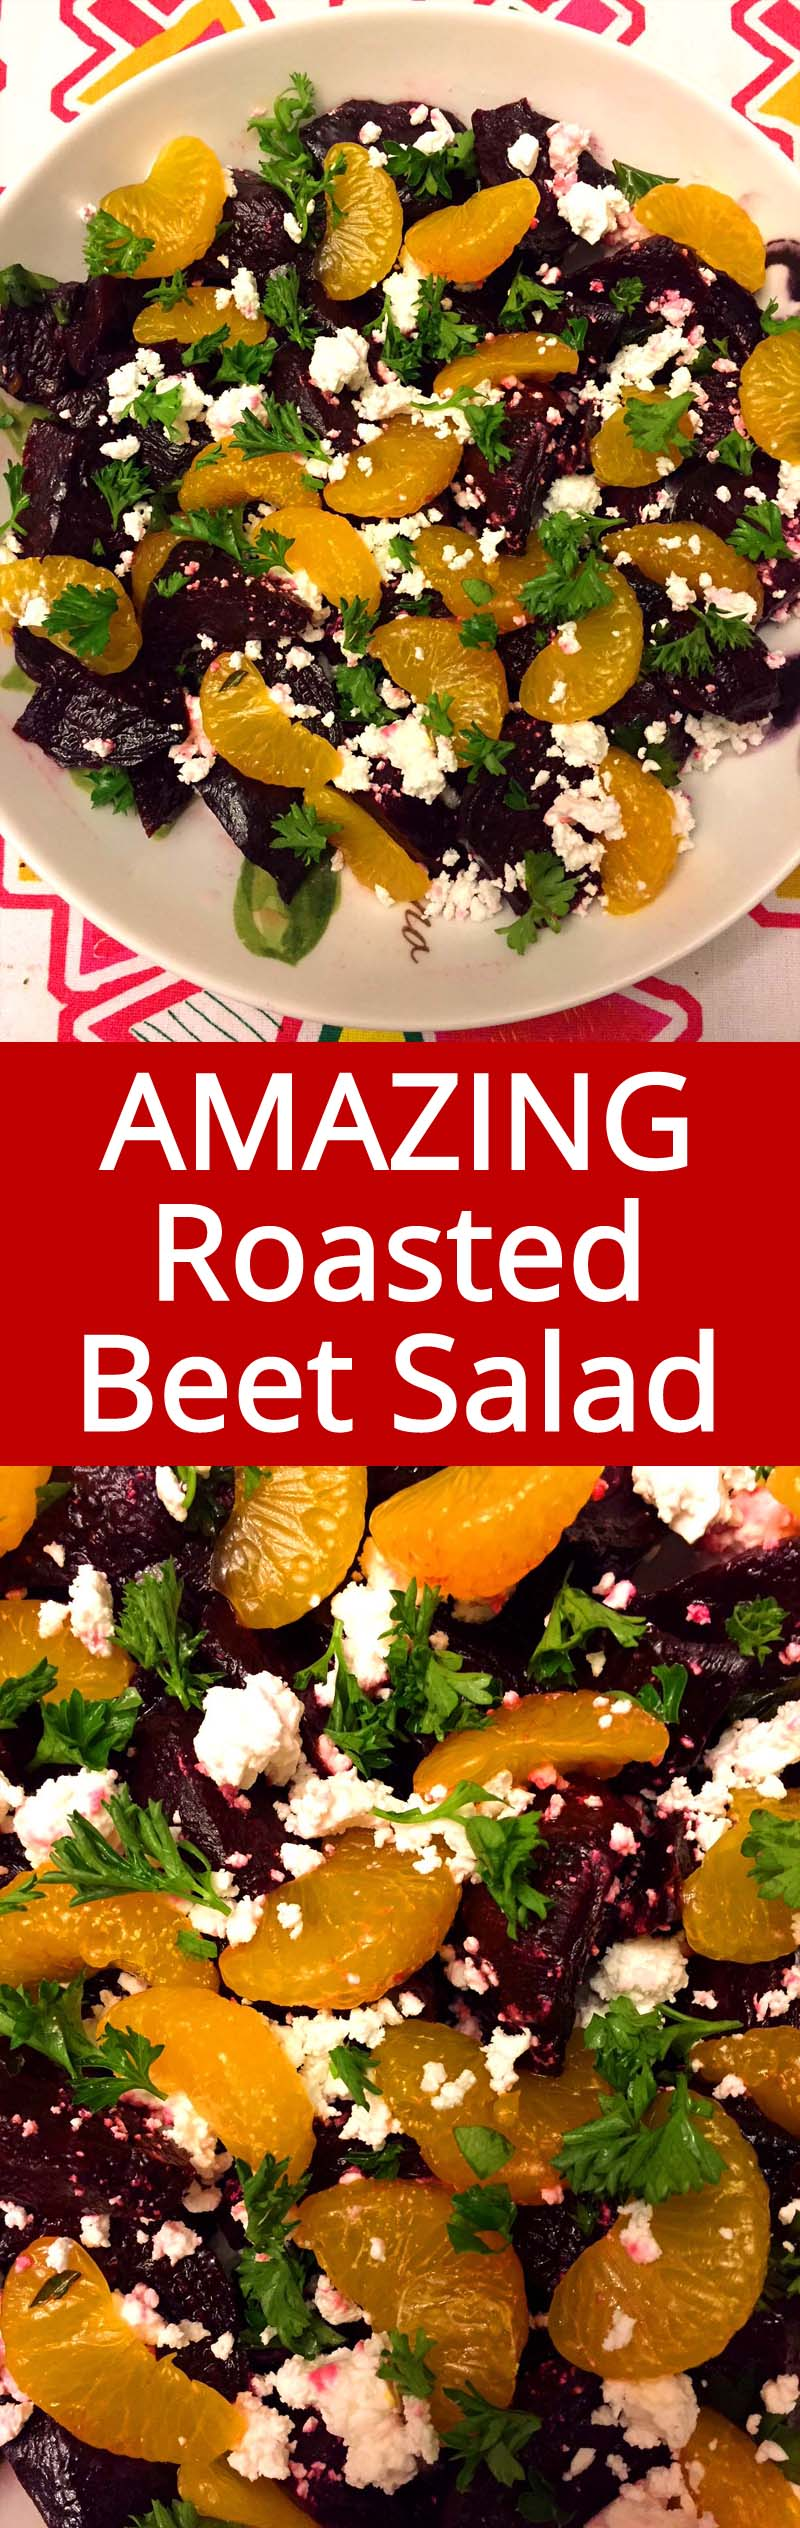 I love this roasted beet salad! Roasted beets go so well together with feta cheese and orange slices! This is my favorite recipe that uses beets!